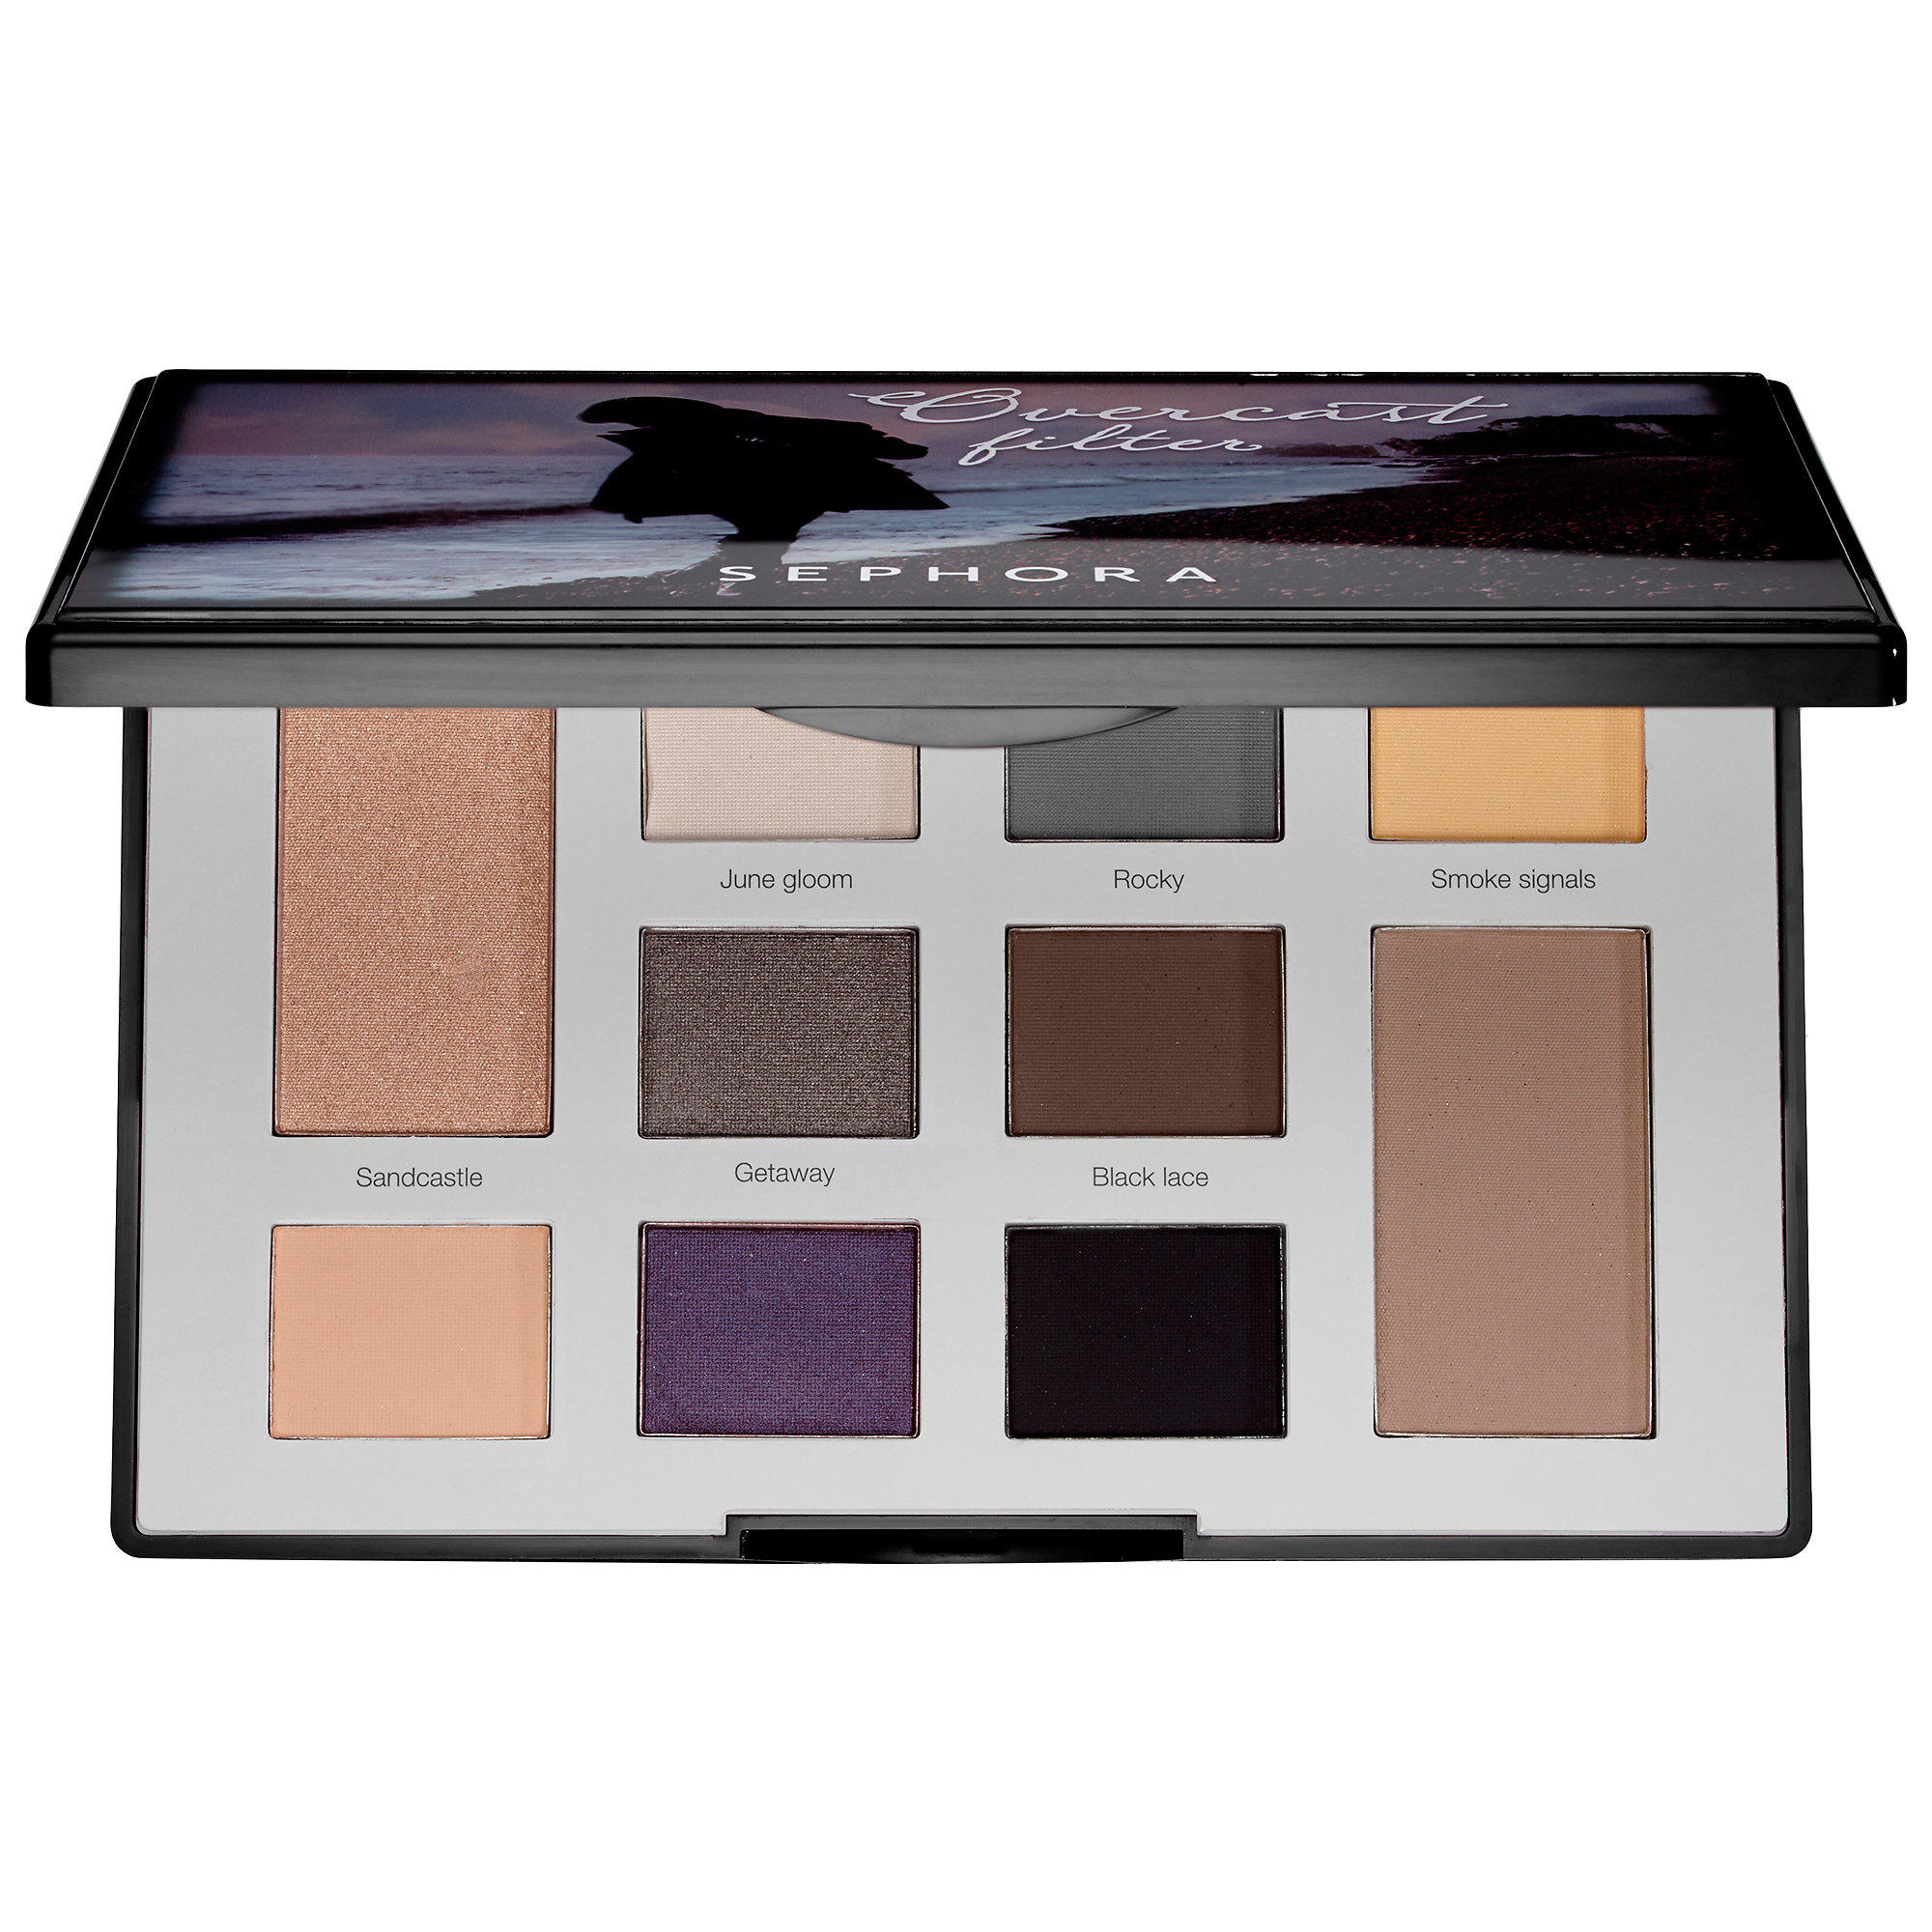 Sephora Colorful Eyeshadow Palette Overcast Filter